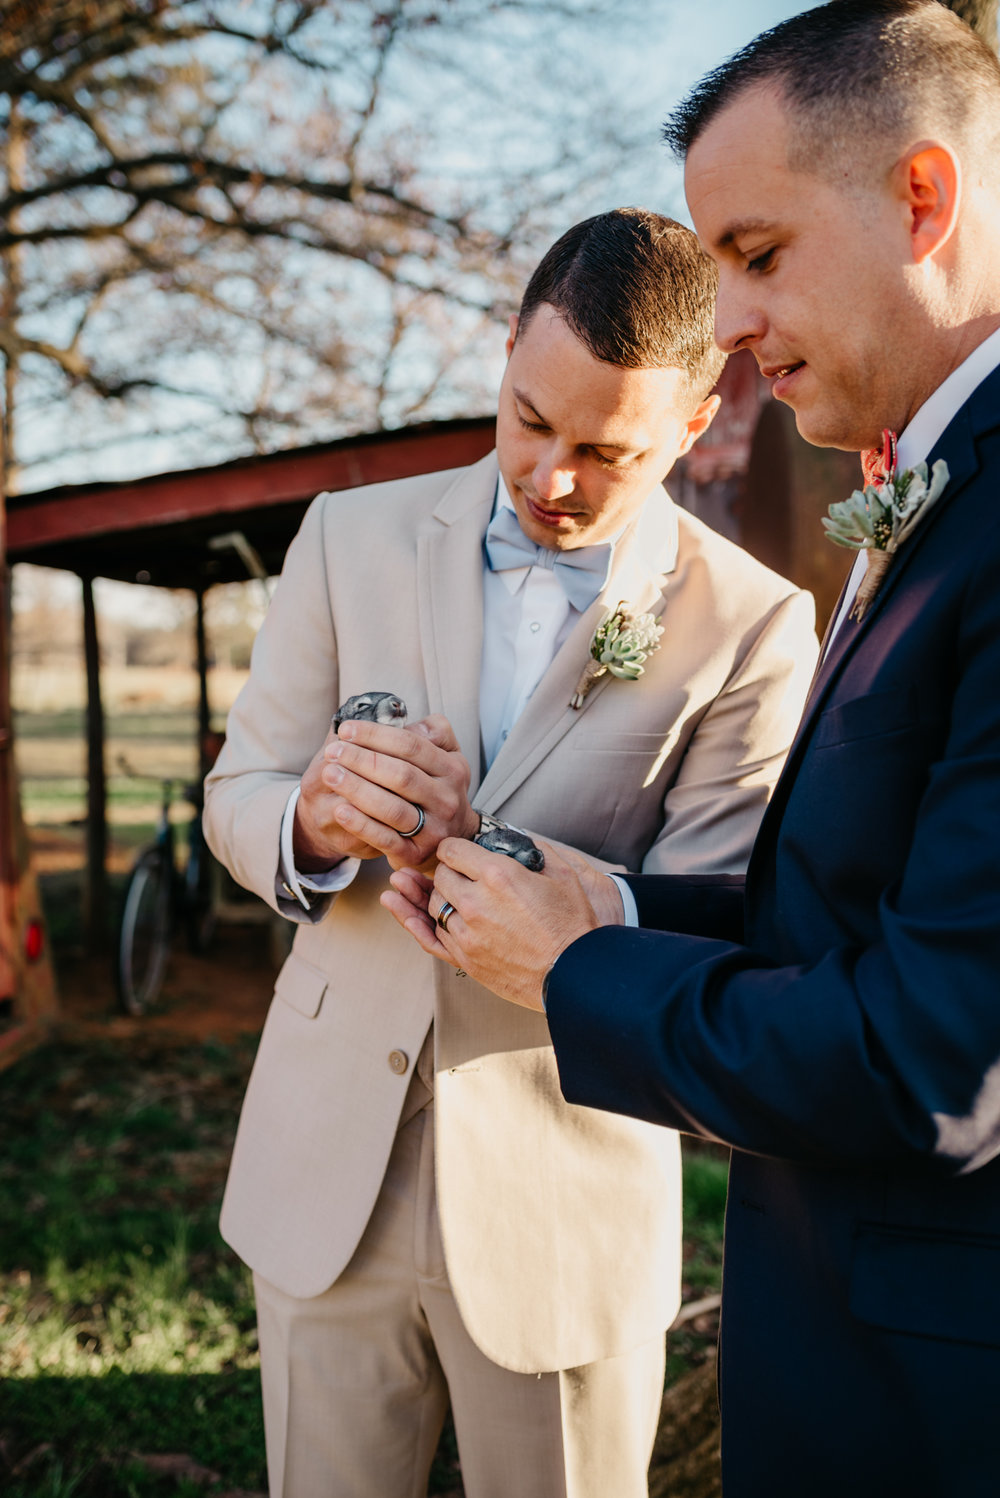 The grooms hold chinchilla bunnies outside in the sunset during the rustic farm styled engagement session with Rose Trail Images at Windy Hill Farm near Raleigh, NC.